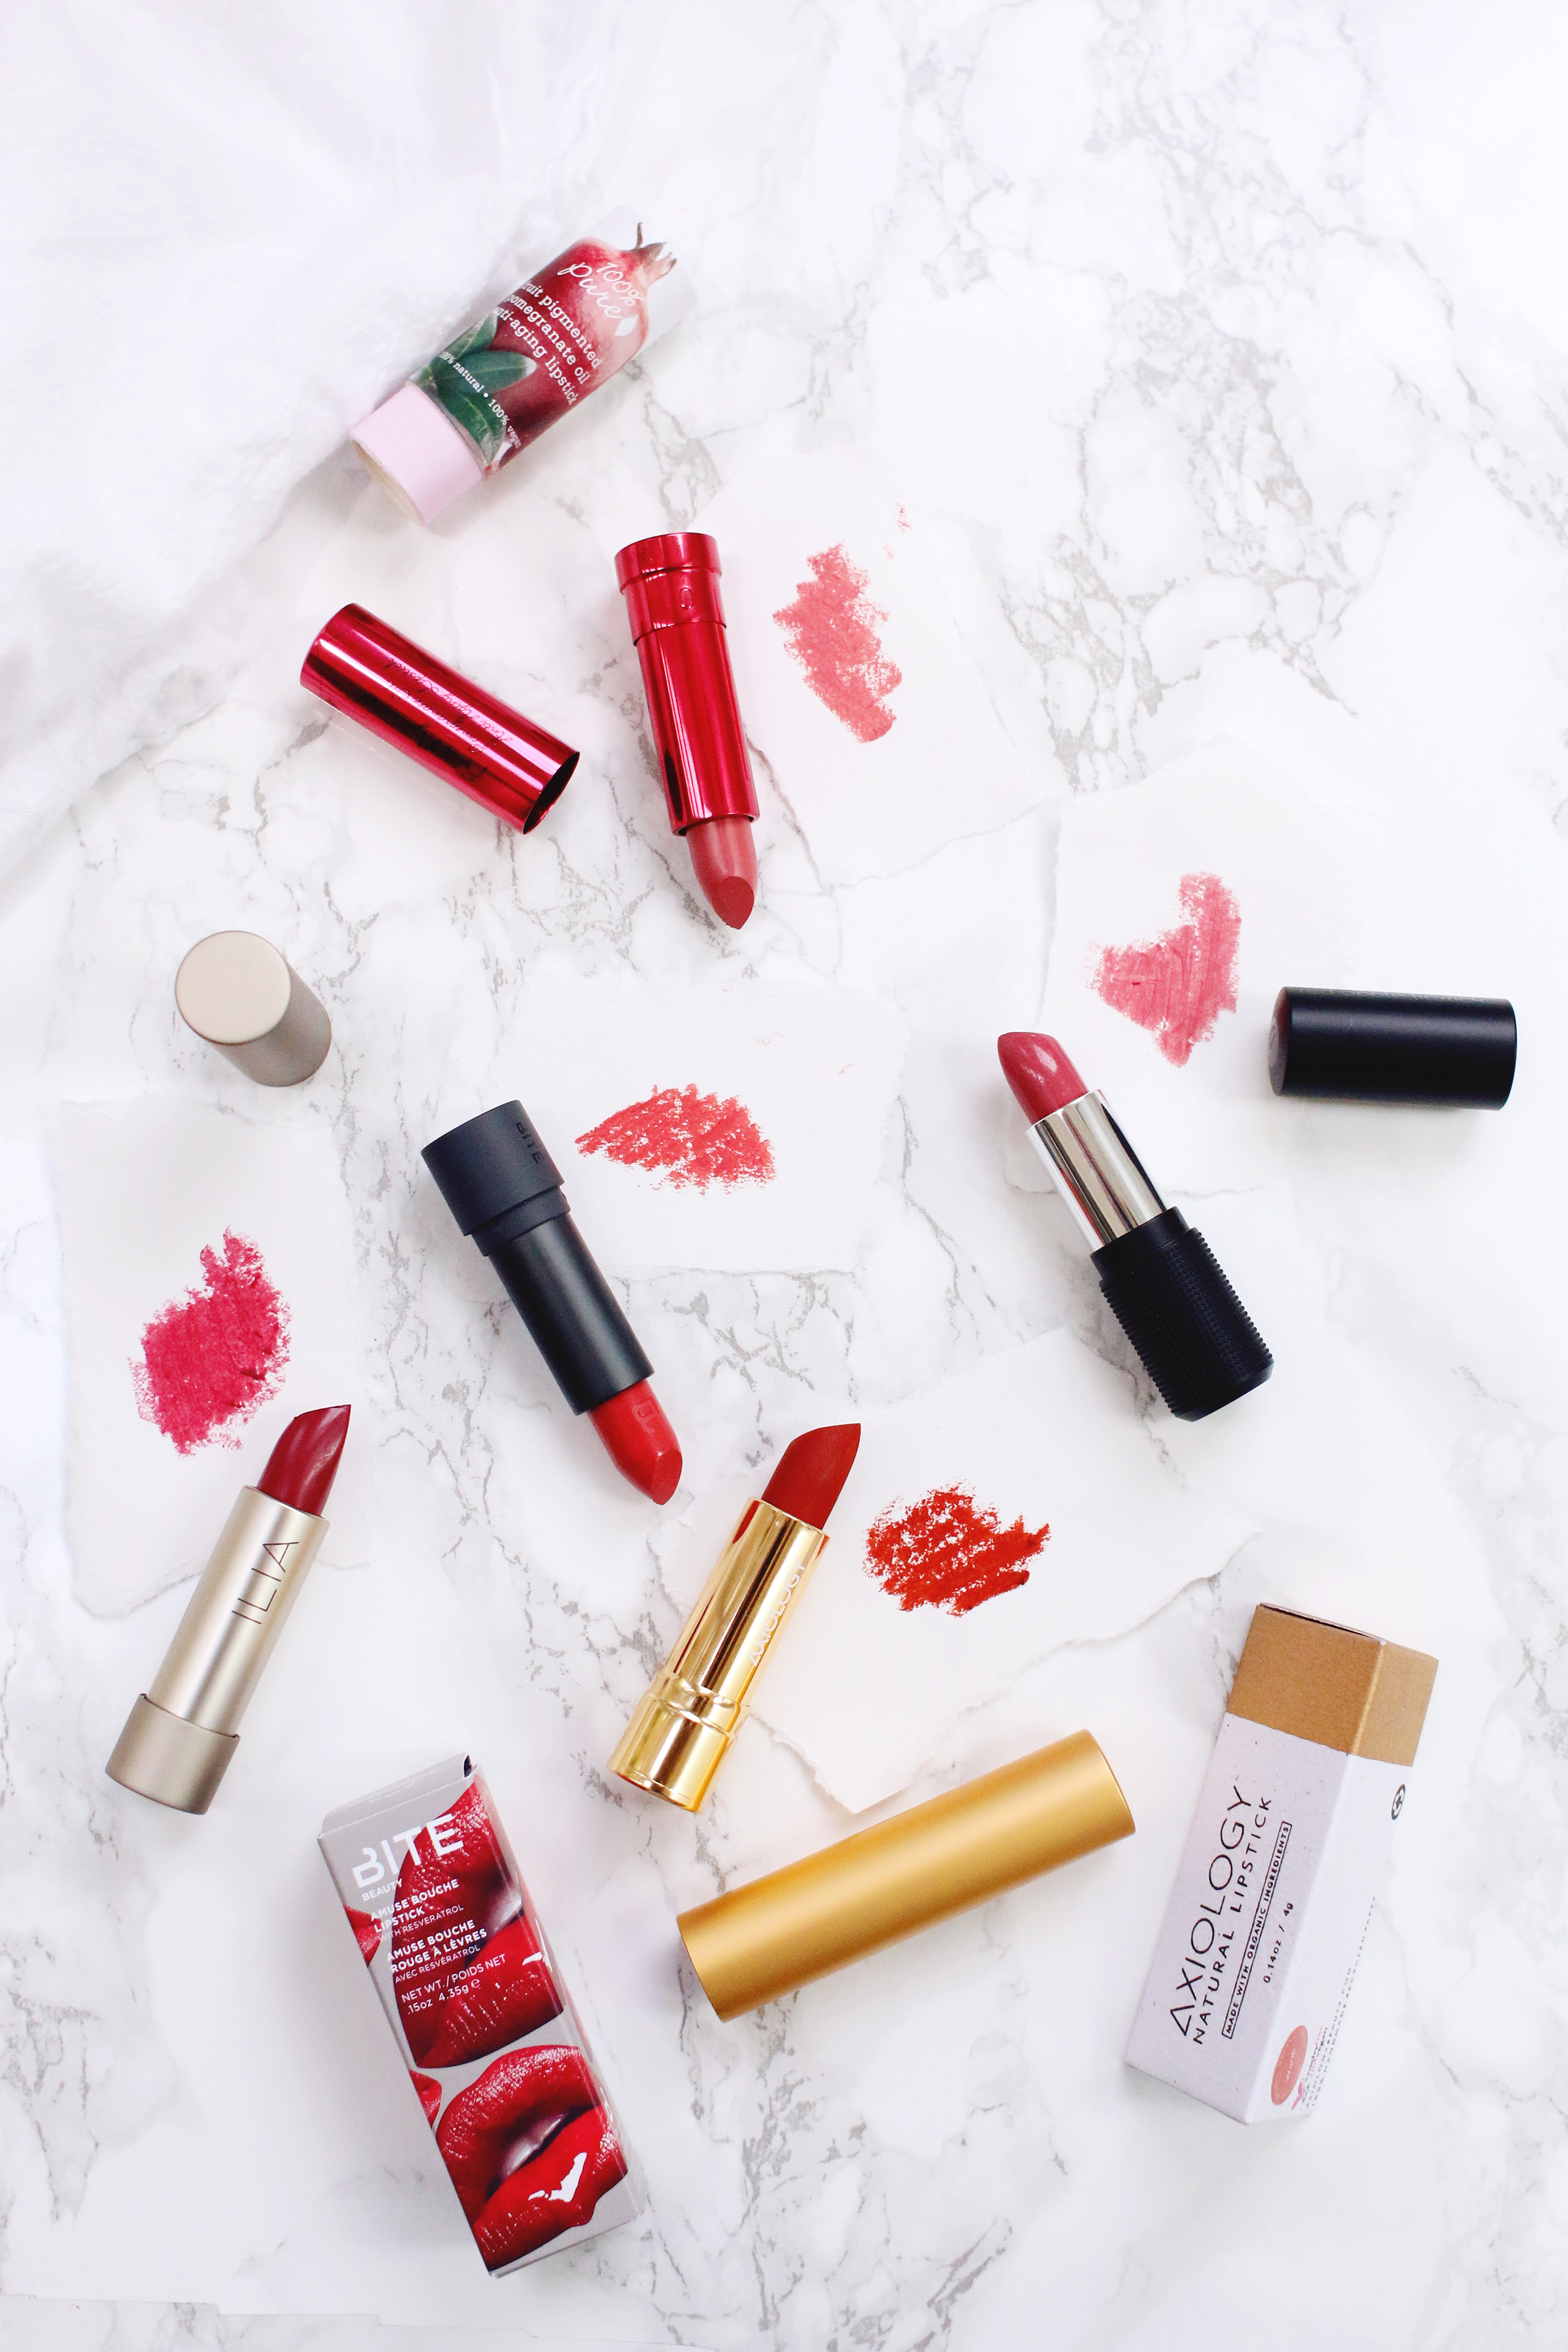 5 Natural Lipstick Brands You Will Love